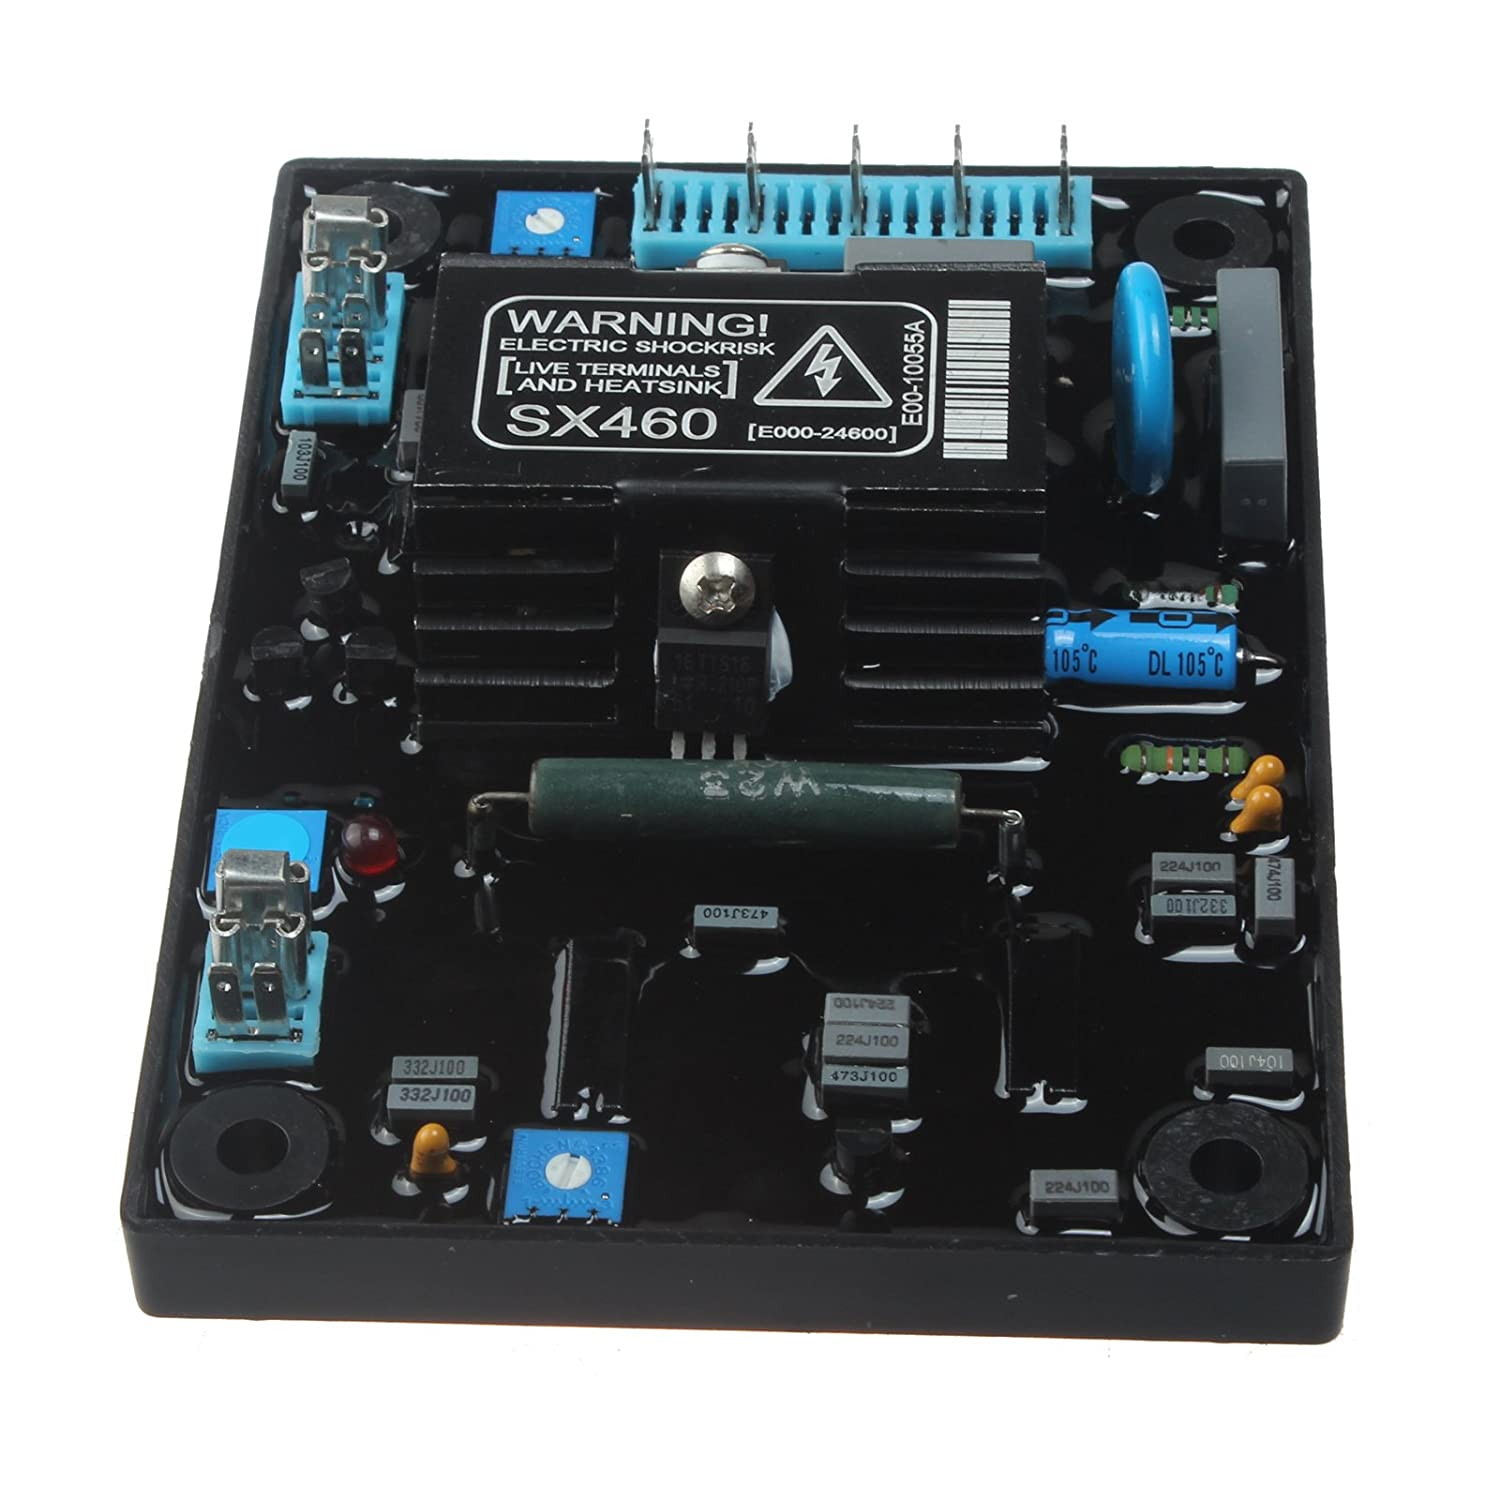 Friday Part Automatic Voltage Regulator SX460 AVR Control Moudle for Generator Genset With 1 Year Warranty